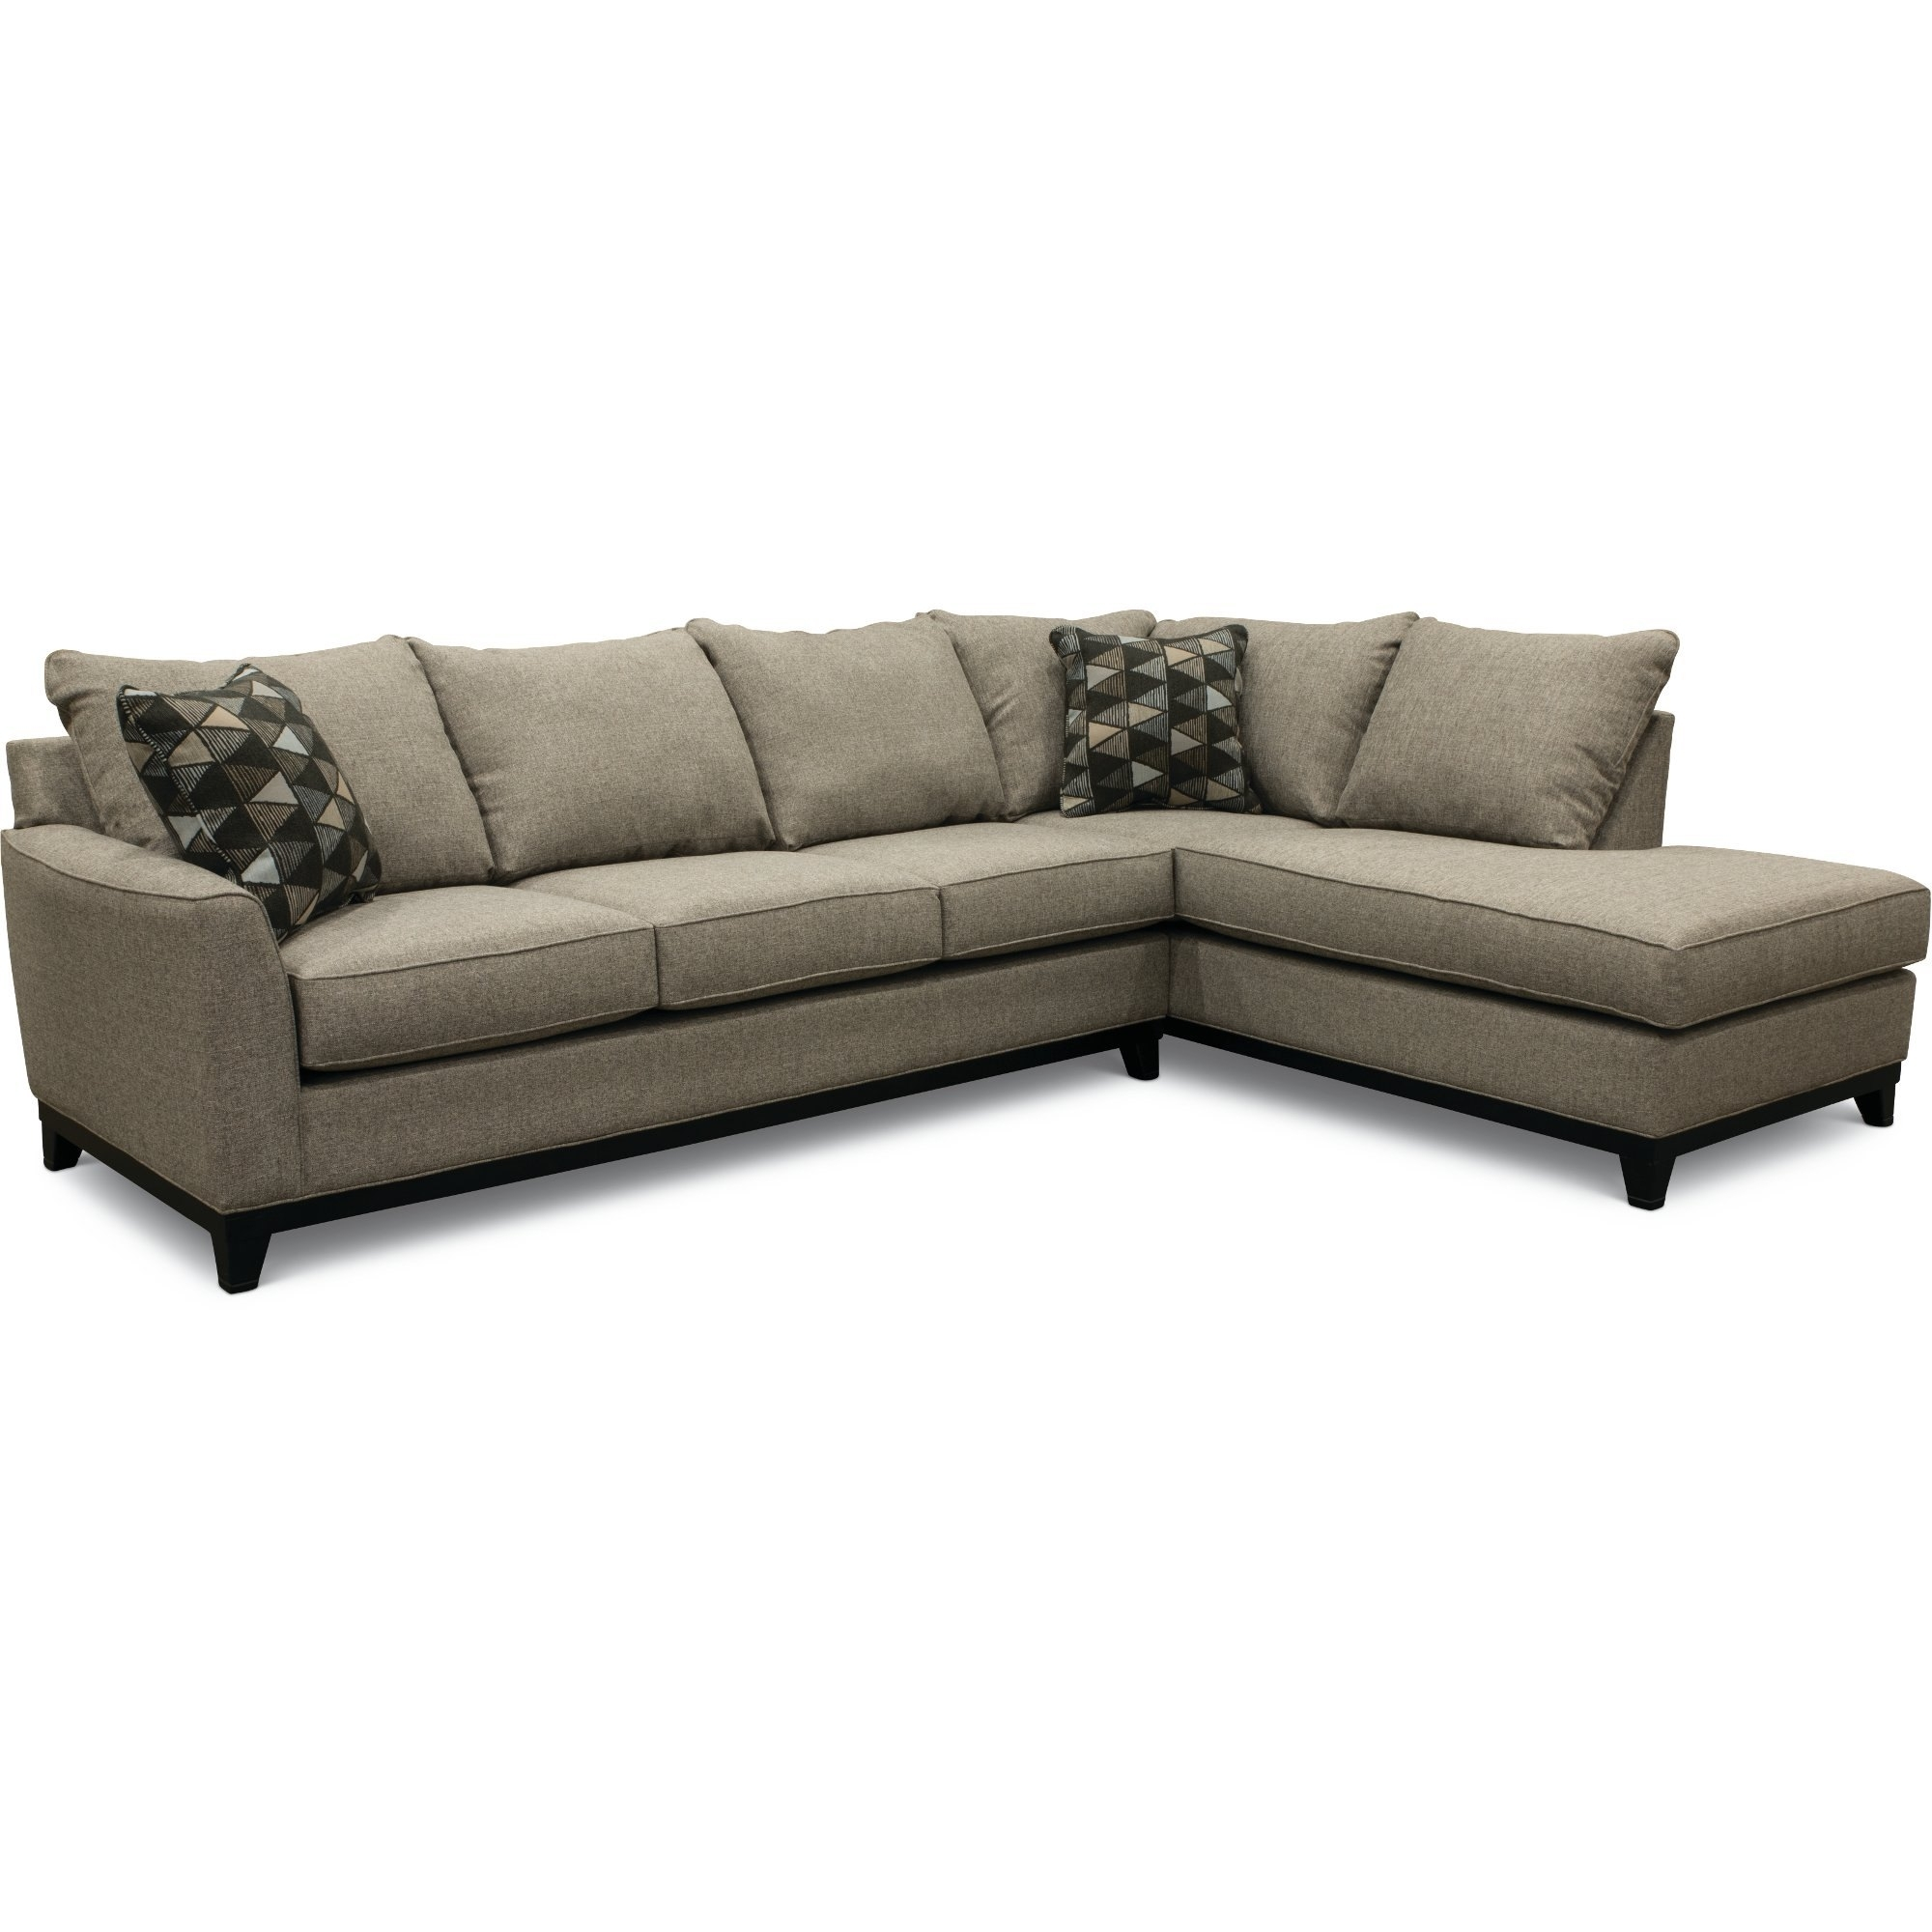 Sofa Sectional | Nokomis Charcoal Laf Sectional With Regard To Aquarius Light Grey 2 Piece Sectionals With Raf Chaise (View 22 of 25)